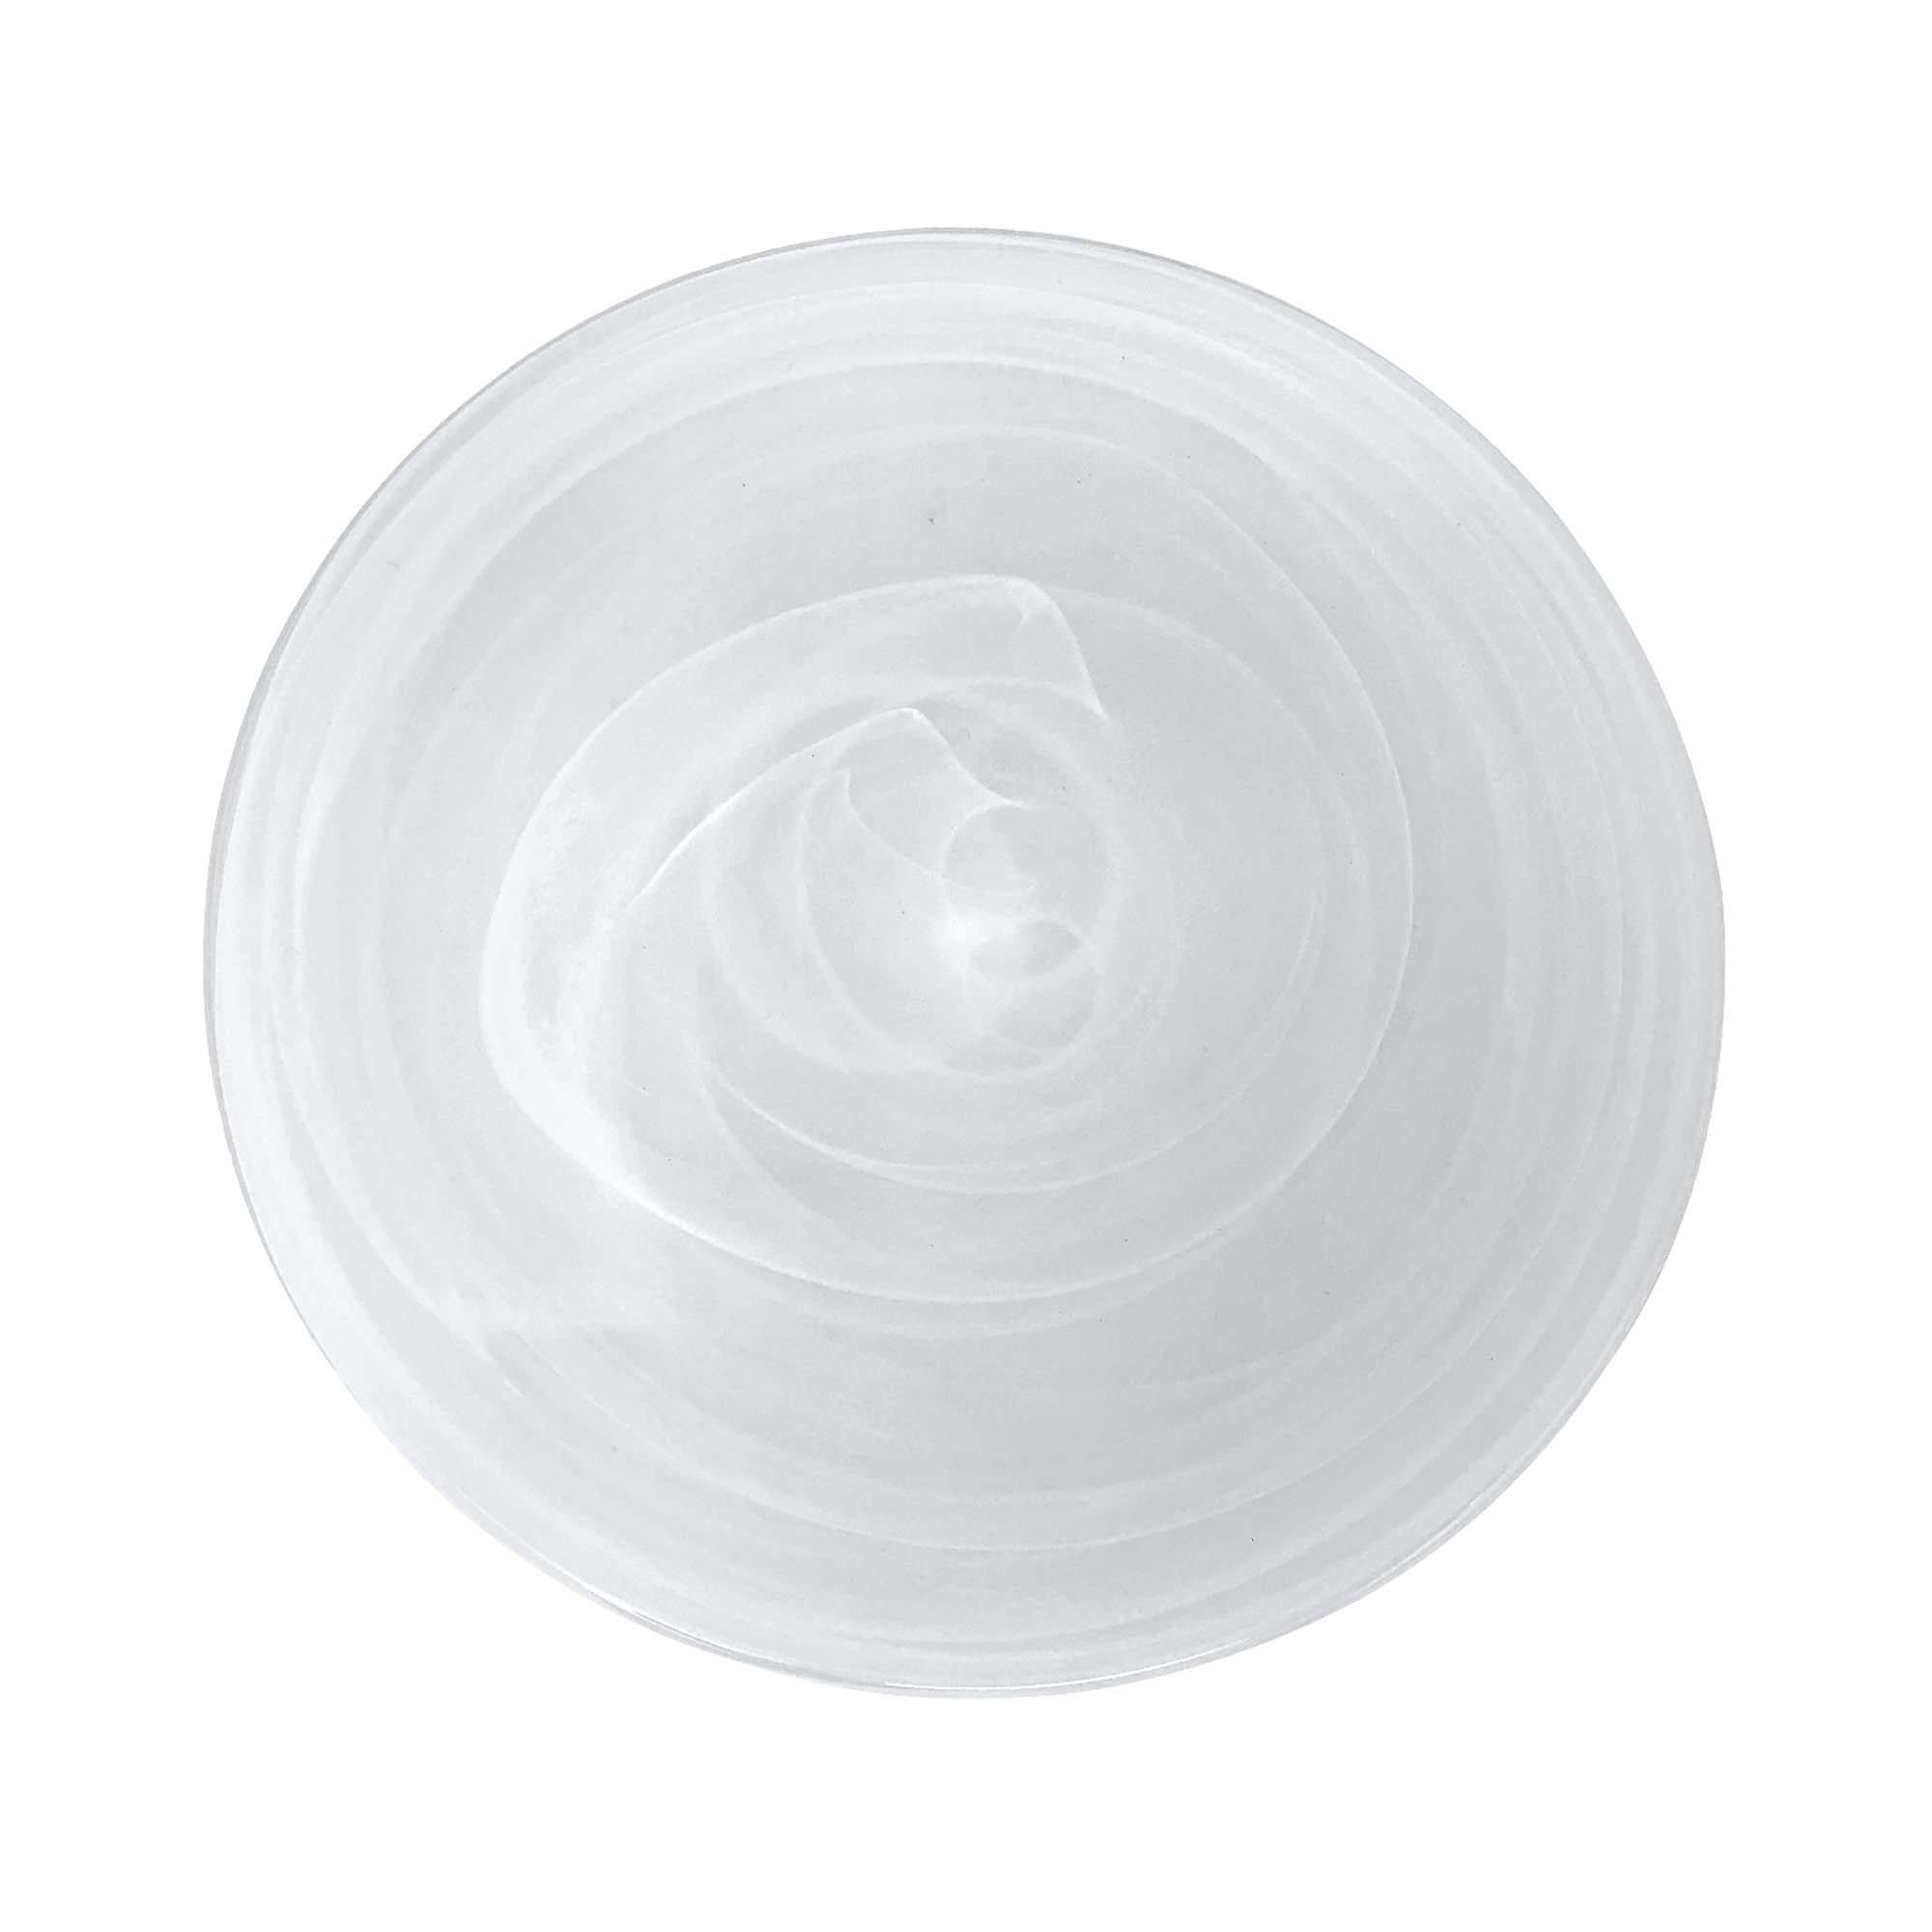 Mariposa - White Alabaster Dinner Plate